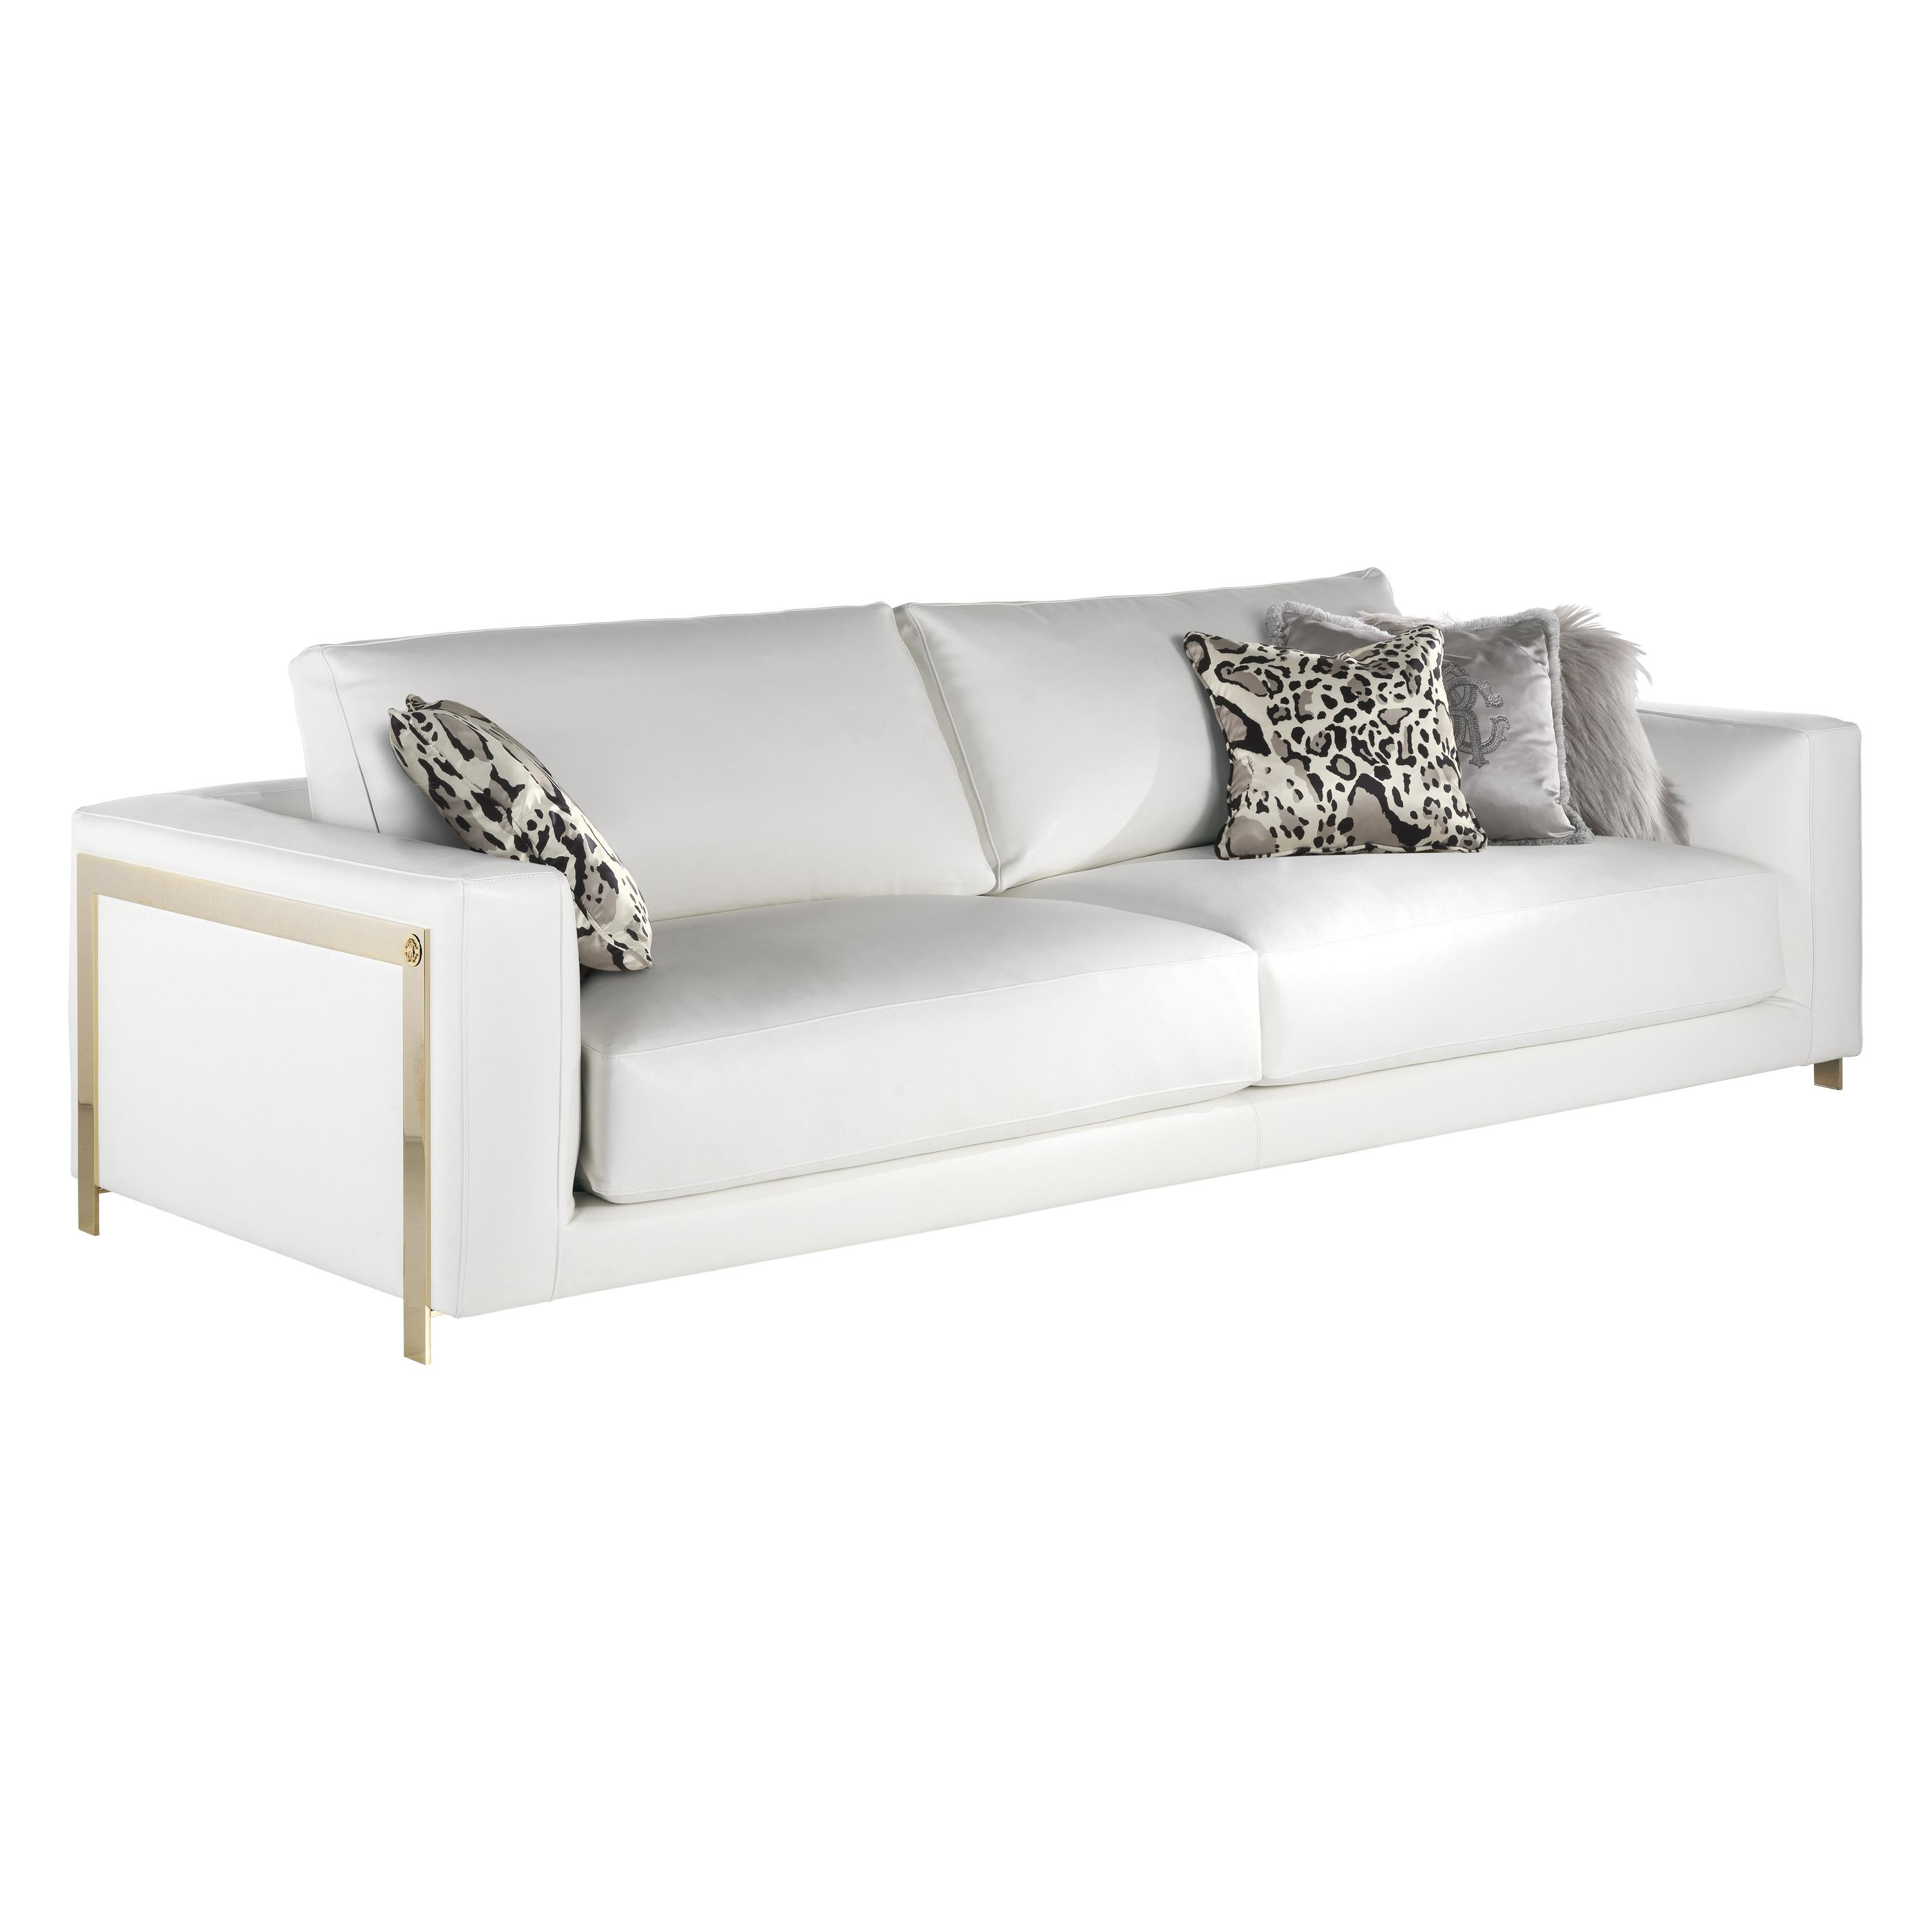 Manhattan 3-Seater Sofa in Leather by Roberto Cavalli Home Interiors